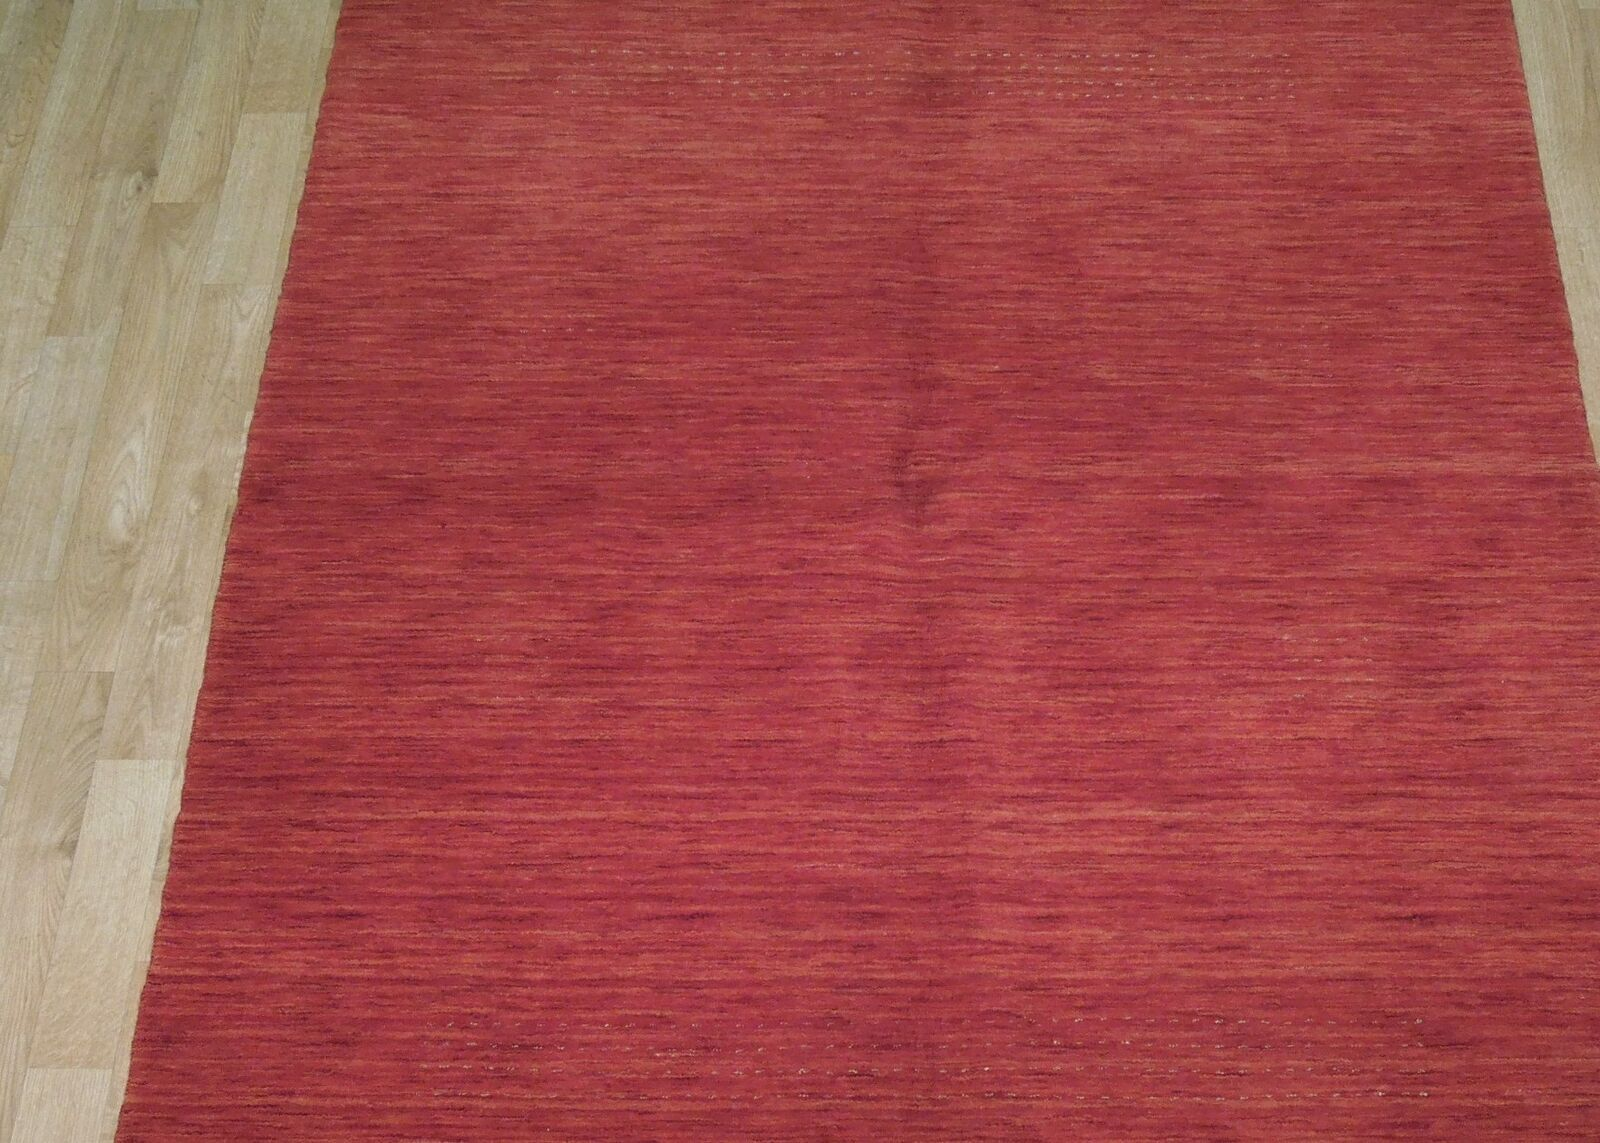 5' x 7' Shades of Red Soft Modern Red Gabbeh Wool Hand-Knotted Rug image 2